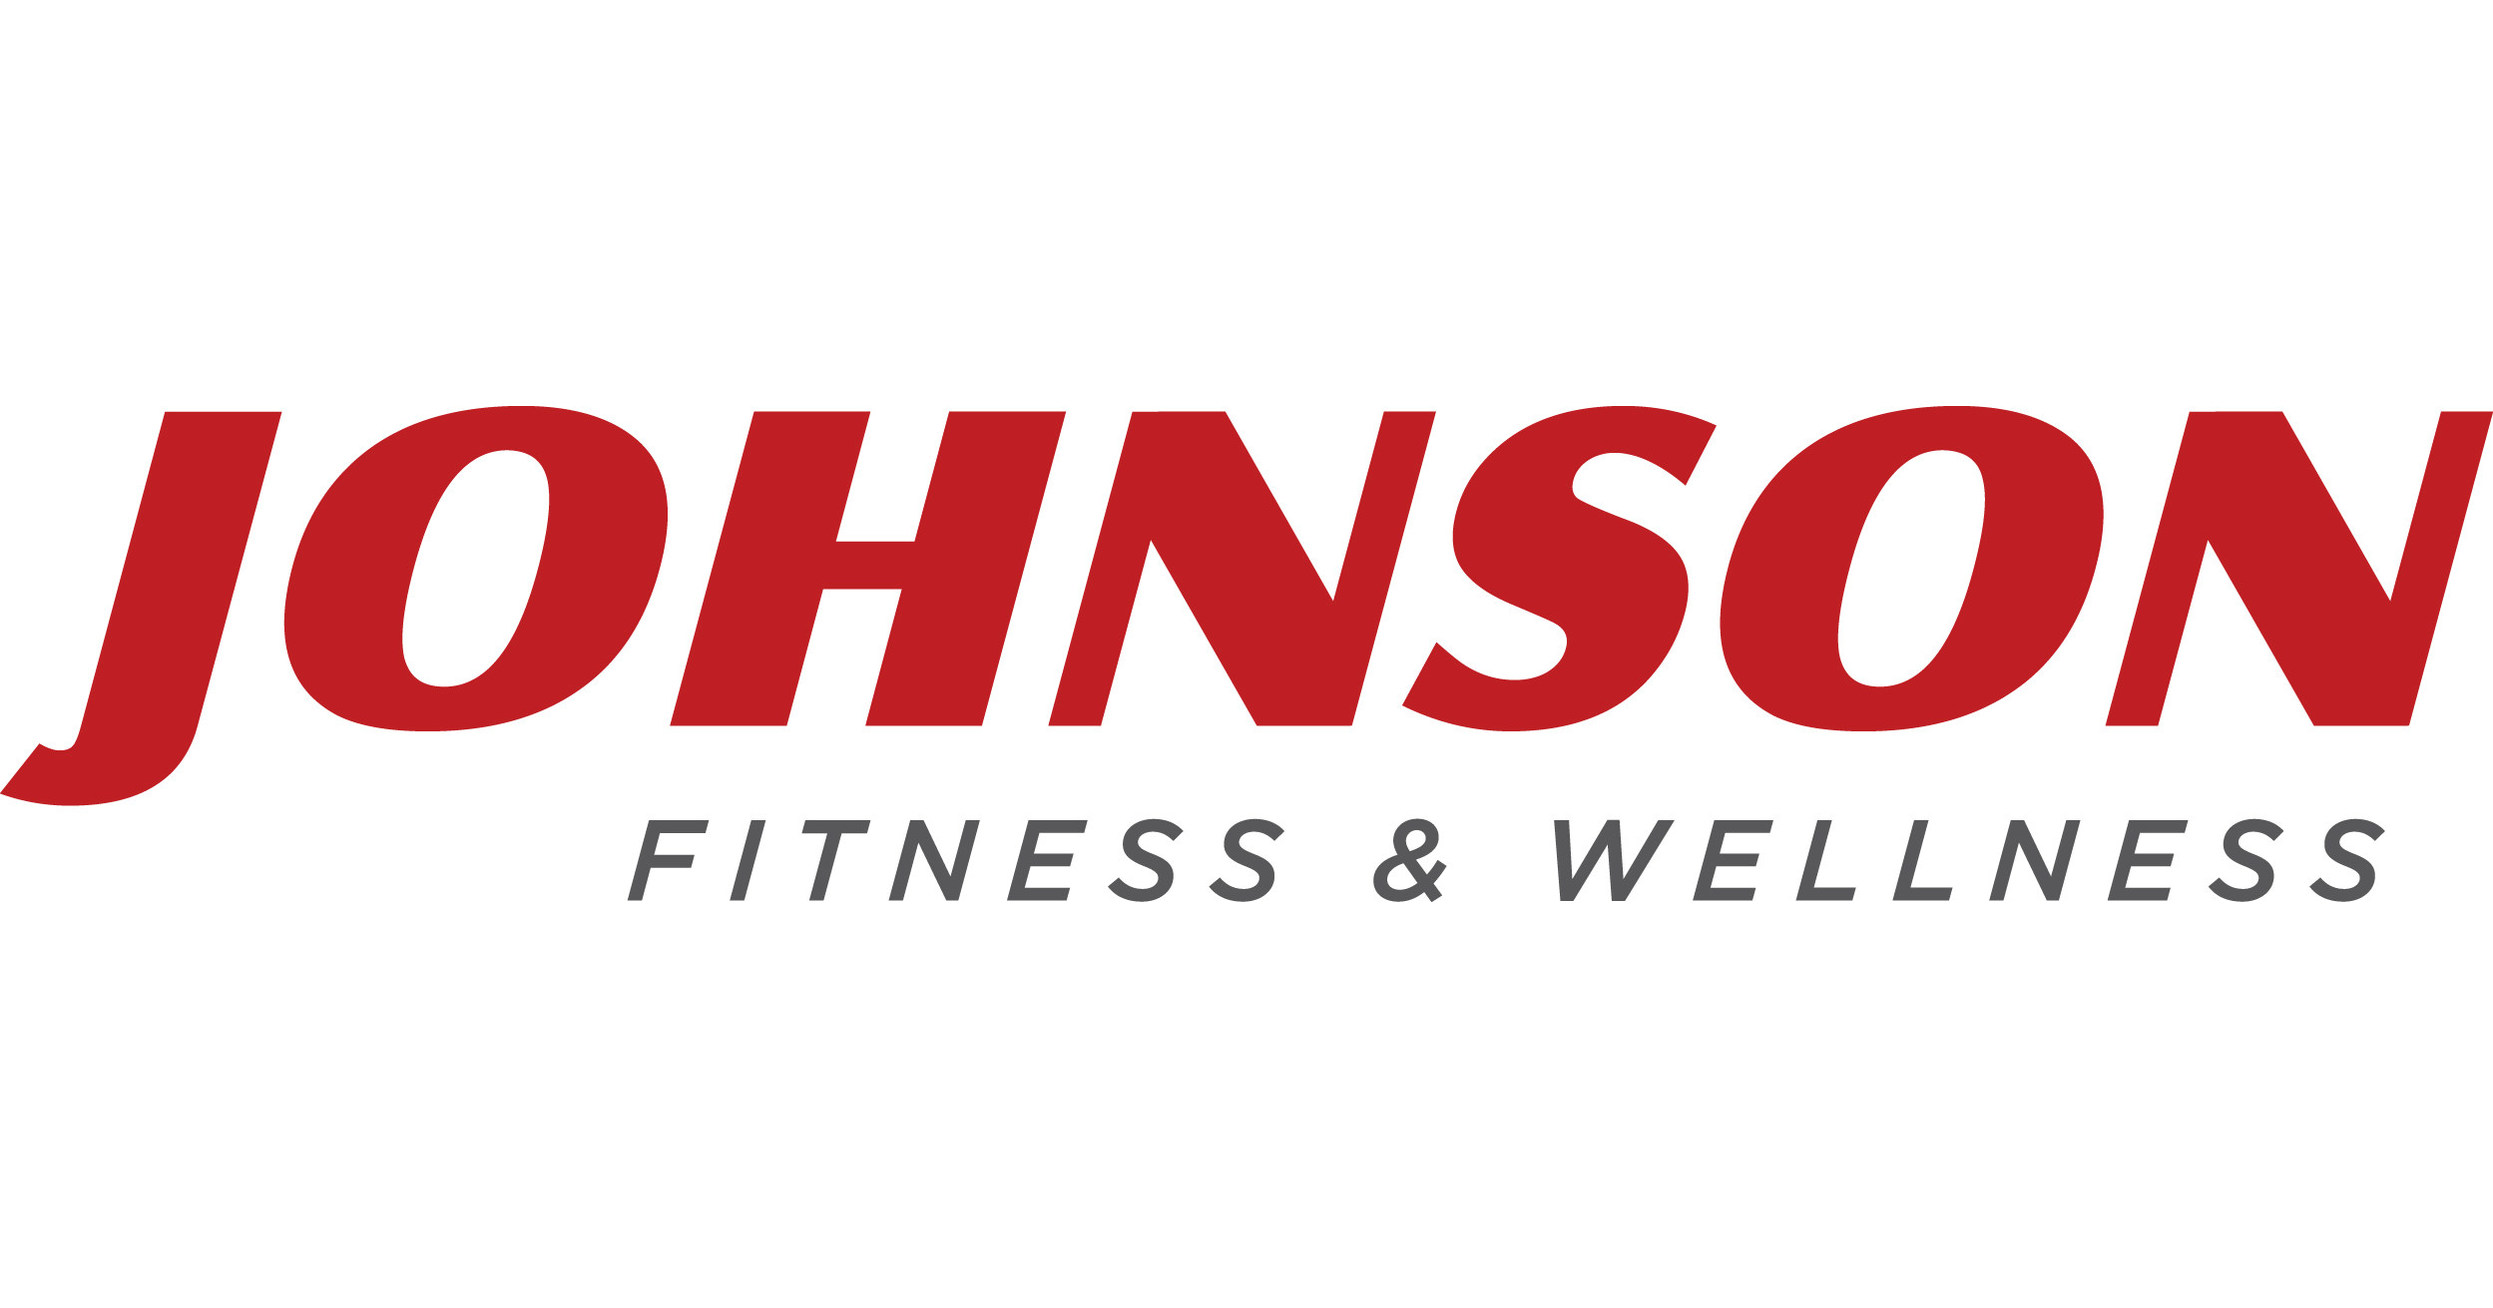 Johnson Fitness And Wellness Retail Brand Launched In The